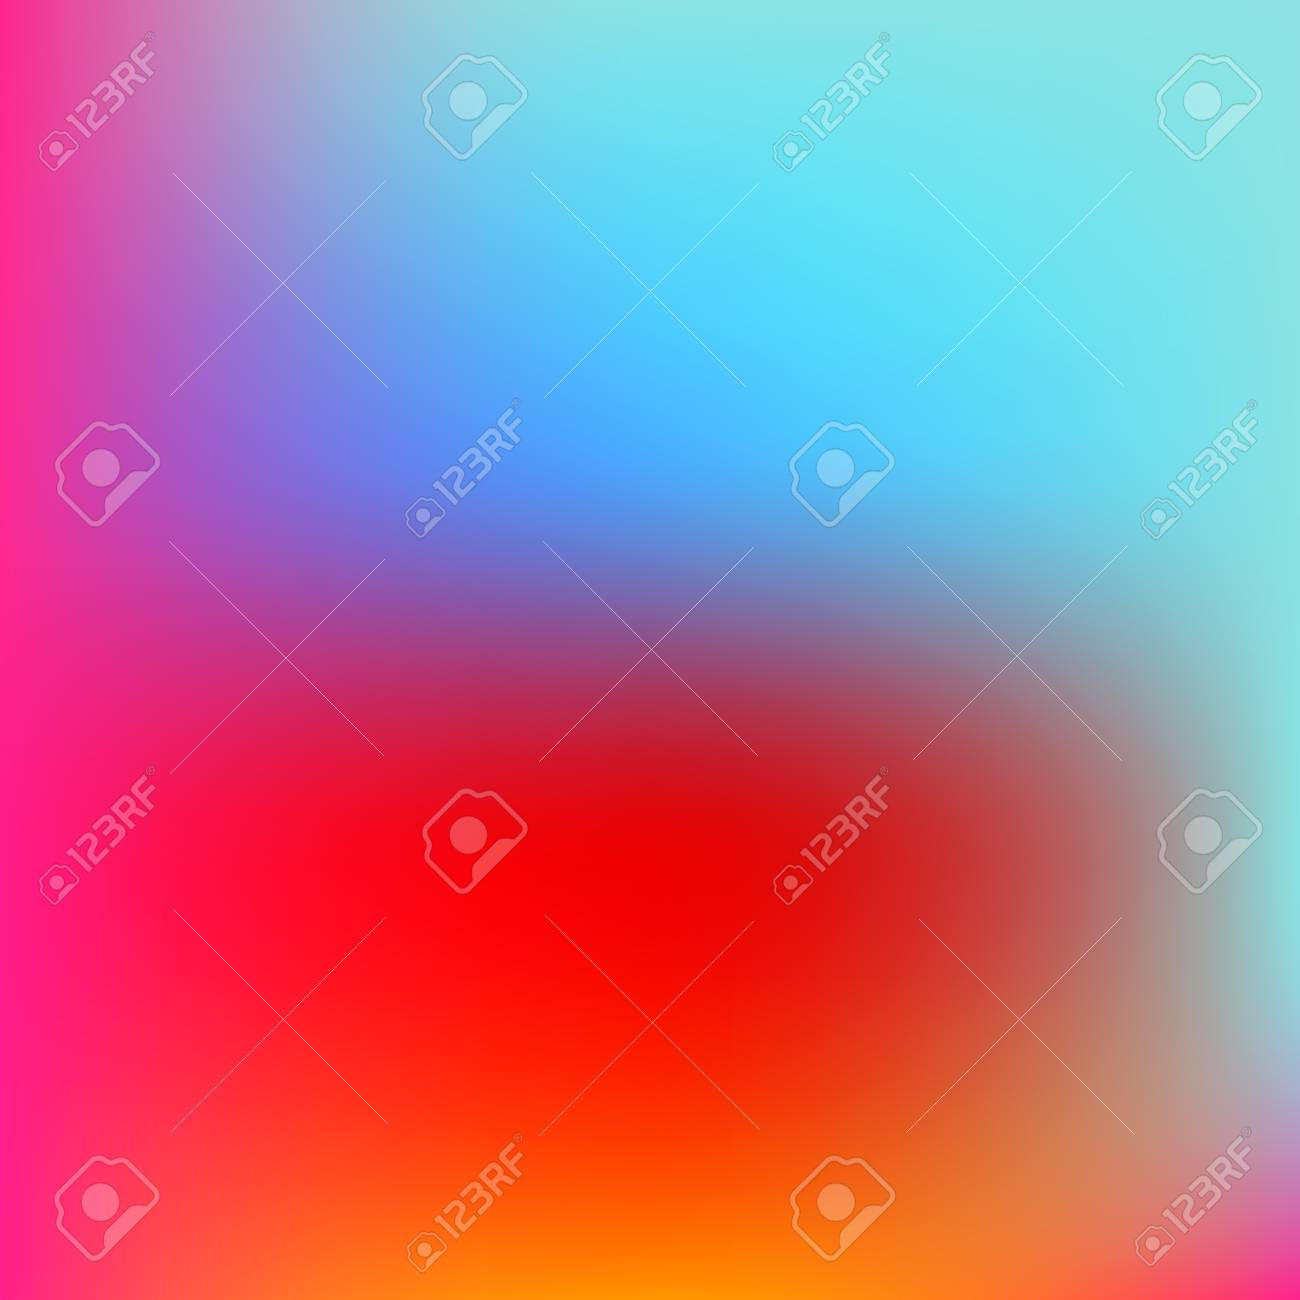 Abstract colorful blurred vector backgrounds. Elements for your website or presentation. - 126996405